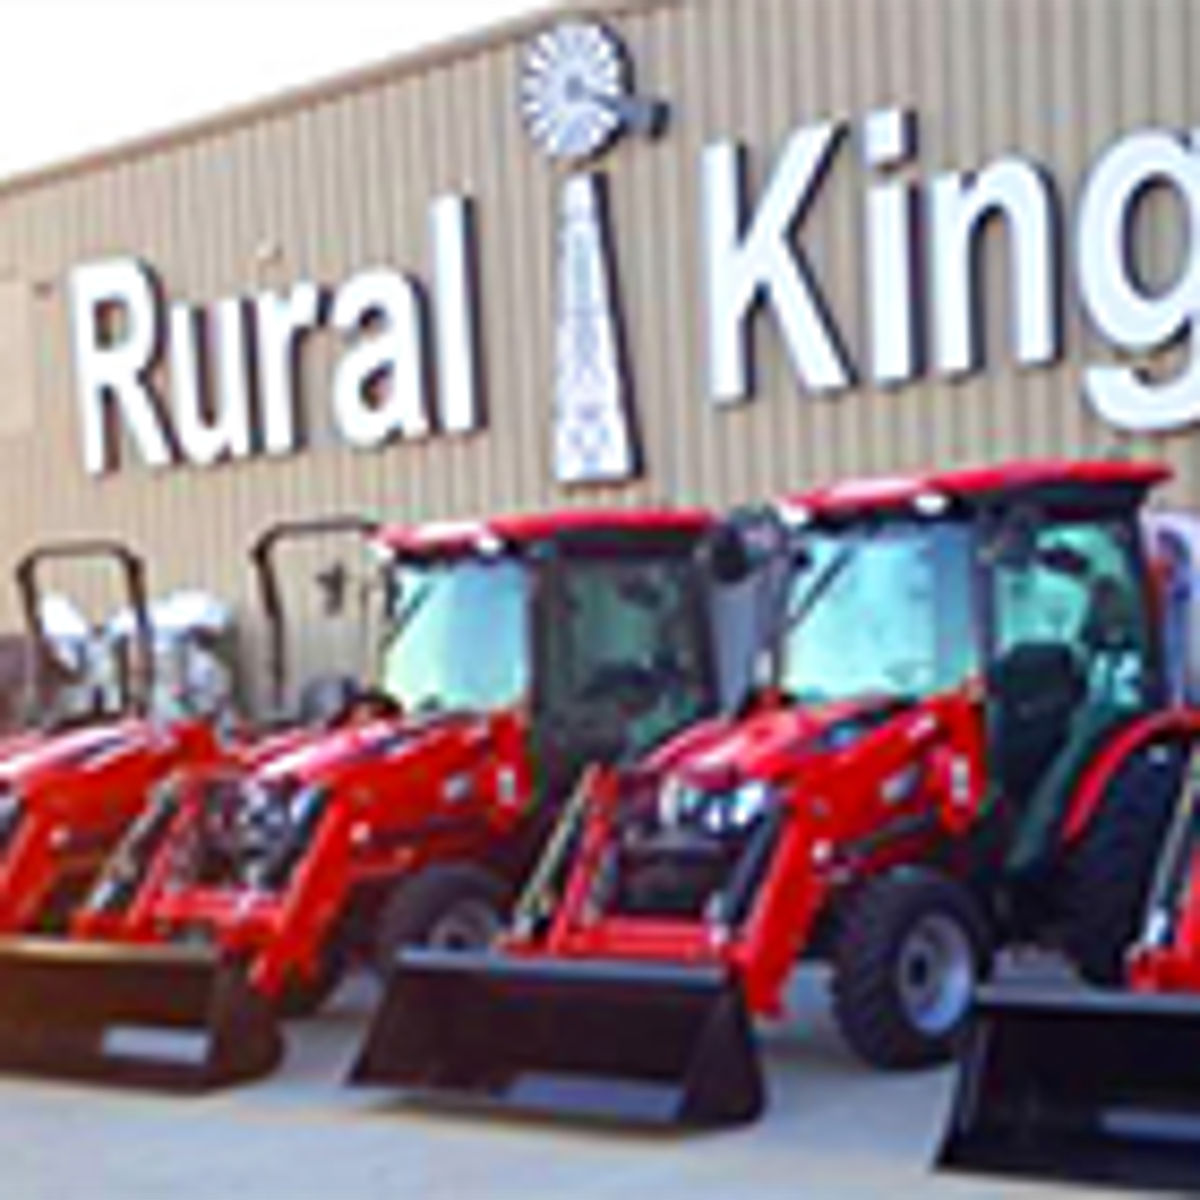 BBB warns customers about Rural King, citing 'an underlying pattern